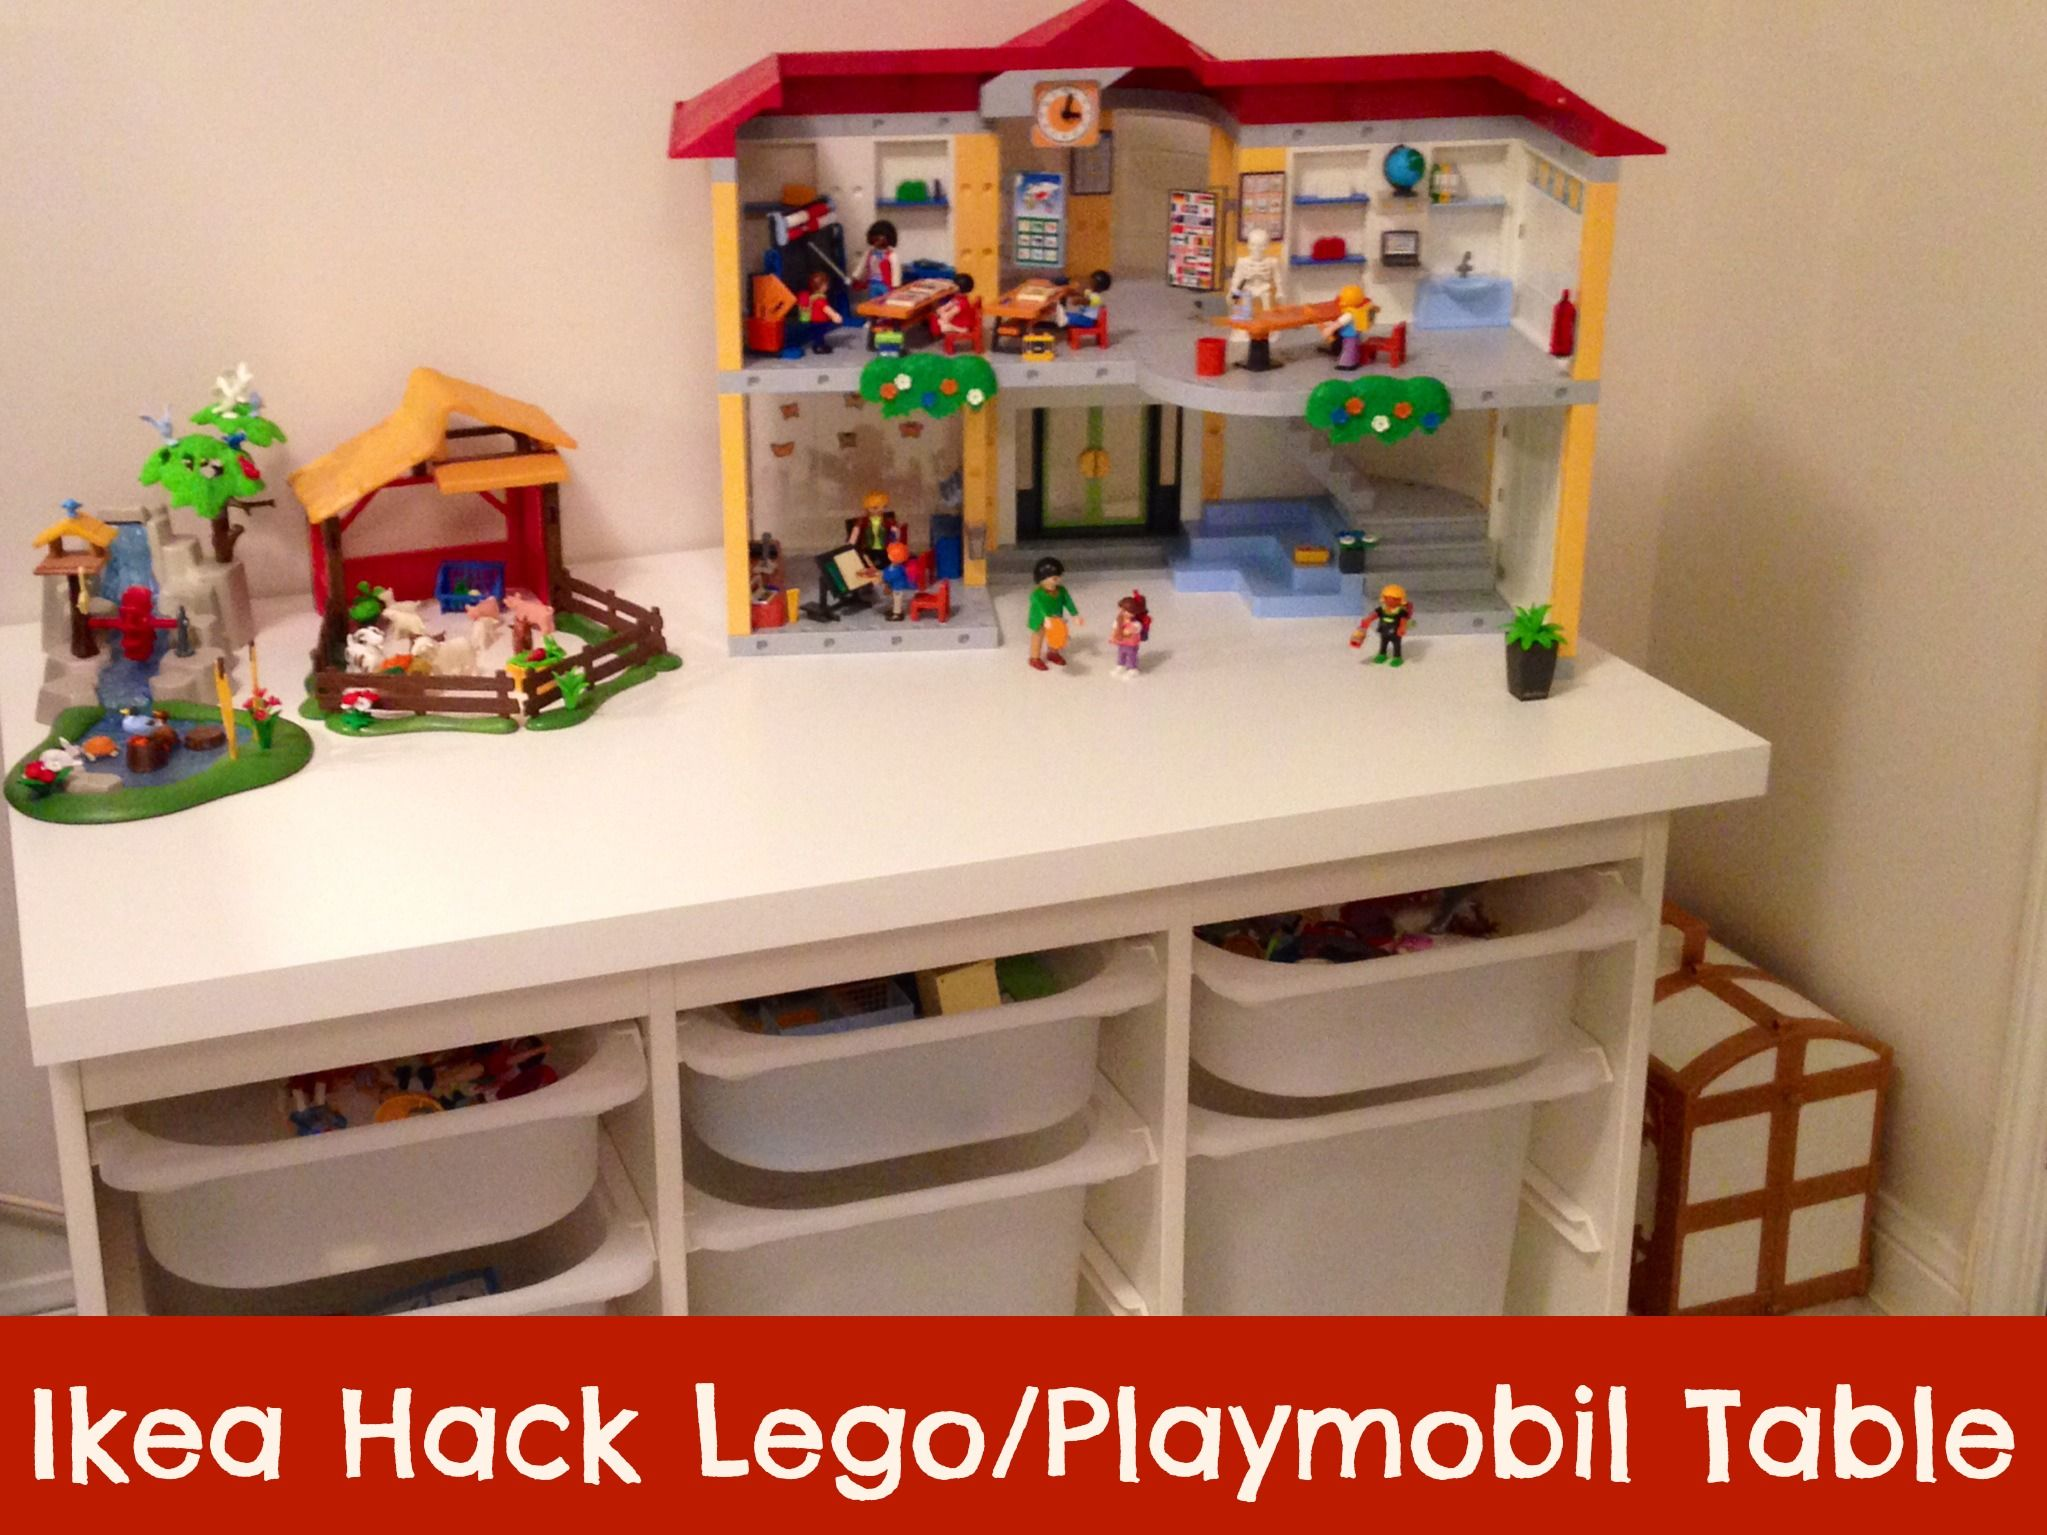 ikea hack table lego playmobil kinderzimmer. Black Bedroom Furniture Sets. Home Design Ideas